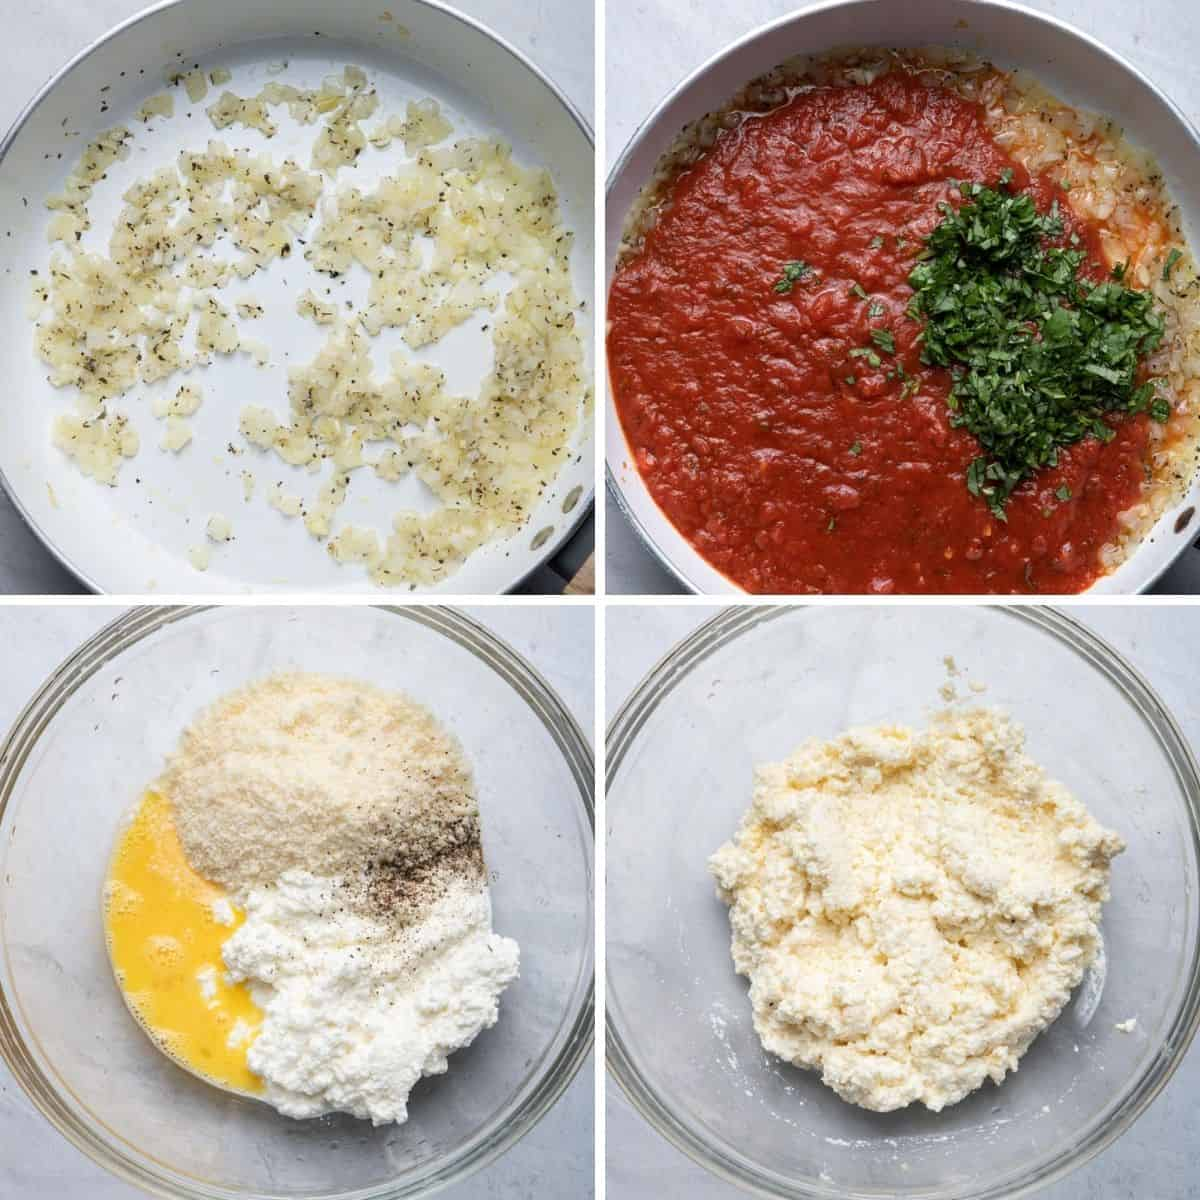 4 image collage to show the marinara sauce cooking and bowl for mixing the ricotta mixture